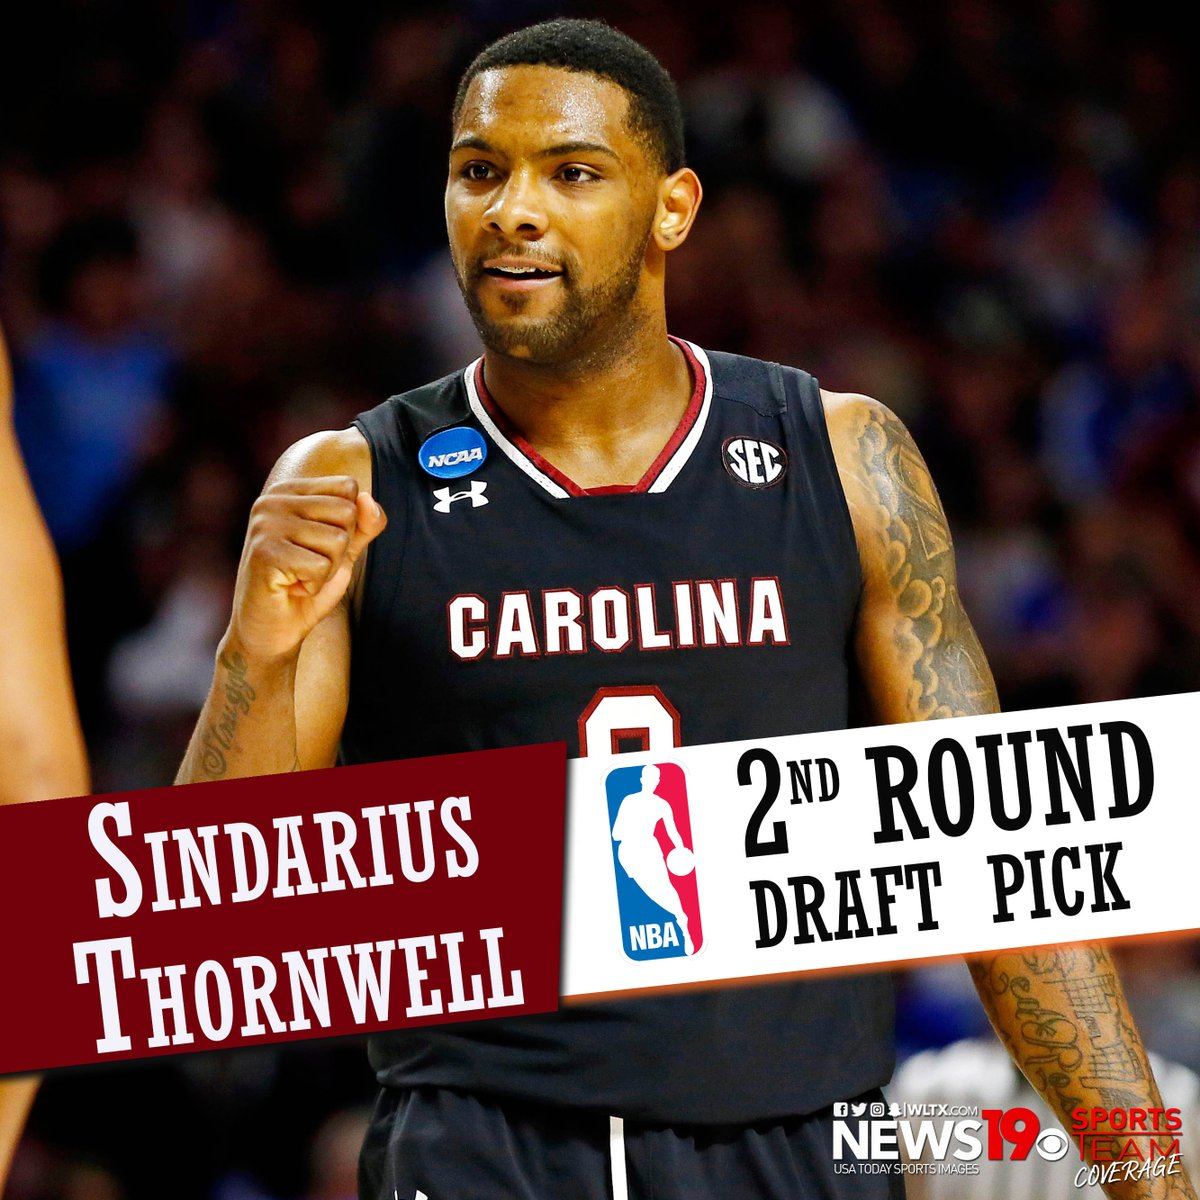 #BREAKING: It's official: Sindarius Thornwell confirms he's a member o...